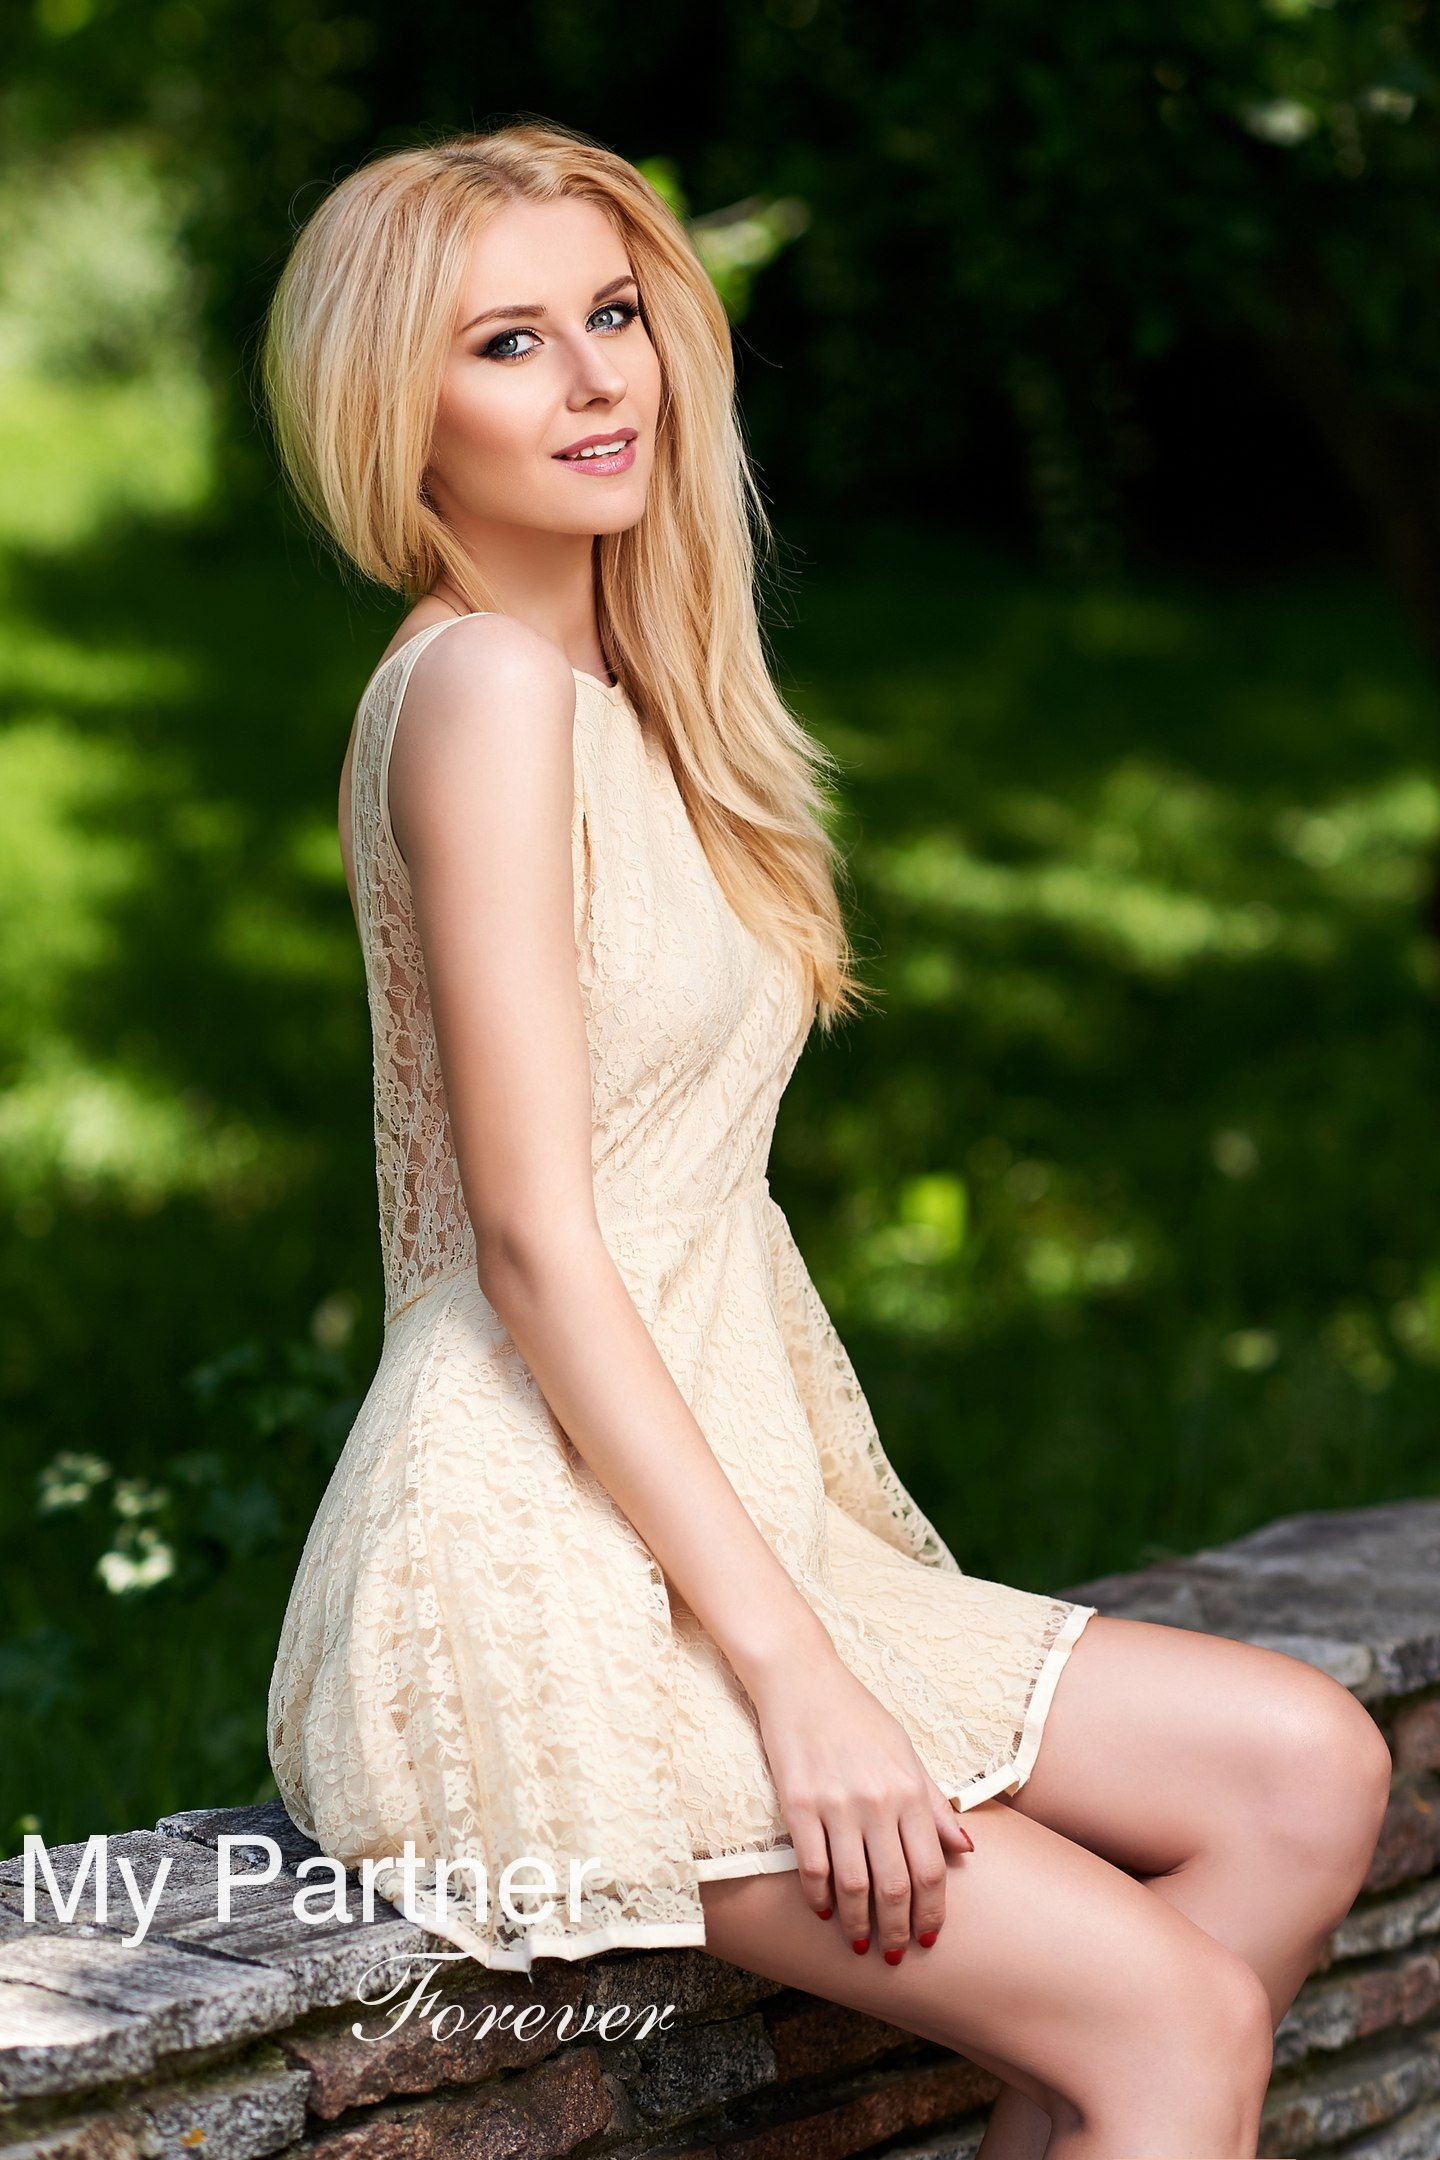 Online Dating with Beautiful Ukrainian Woman Tatiyana from Kiev, Ukraine